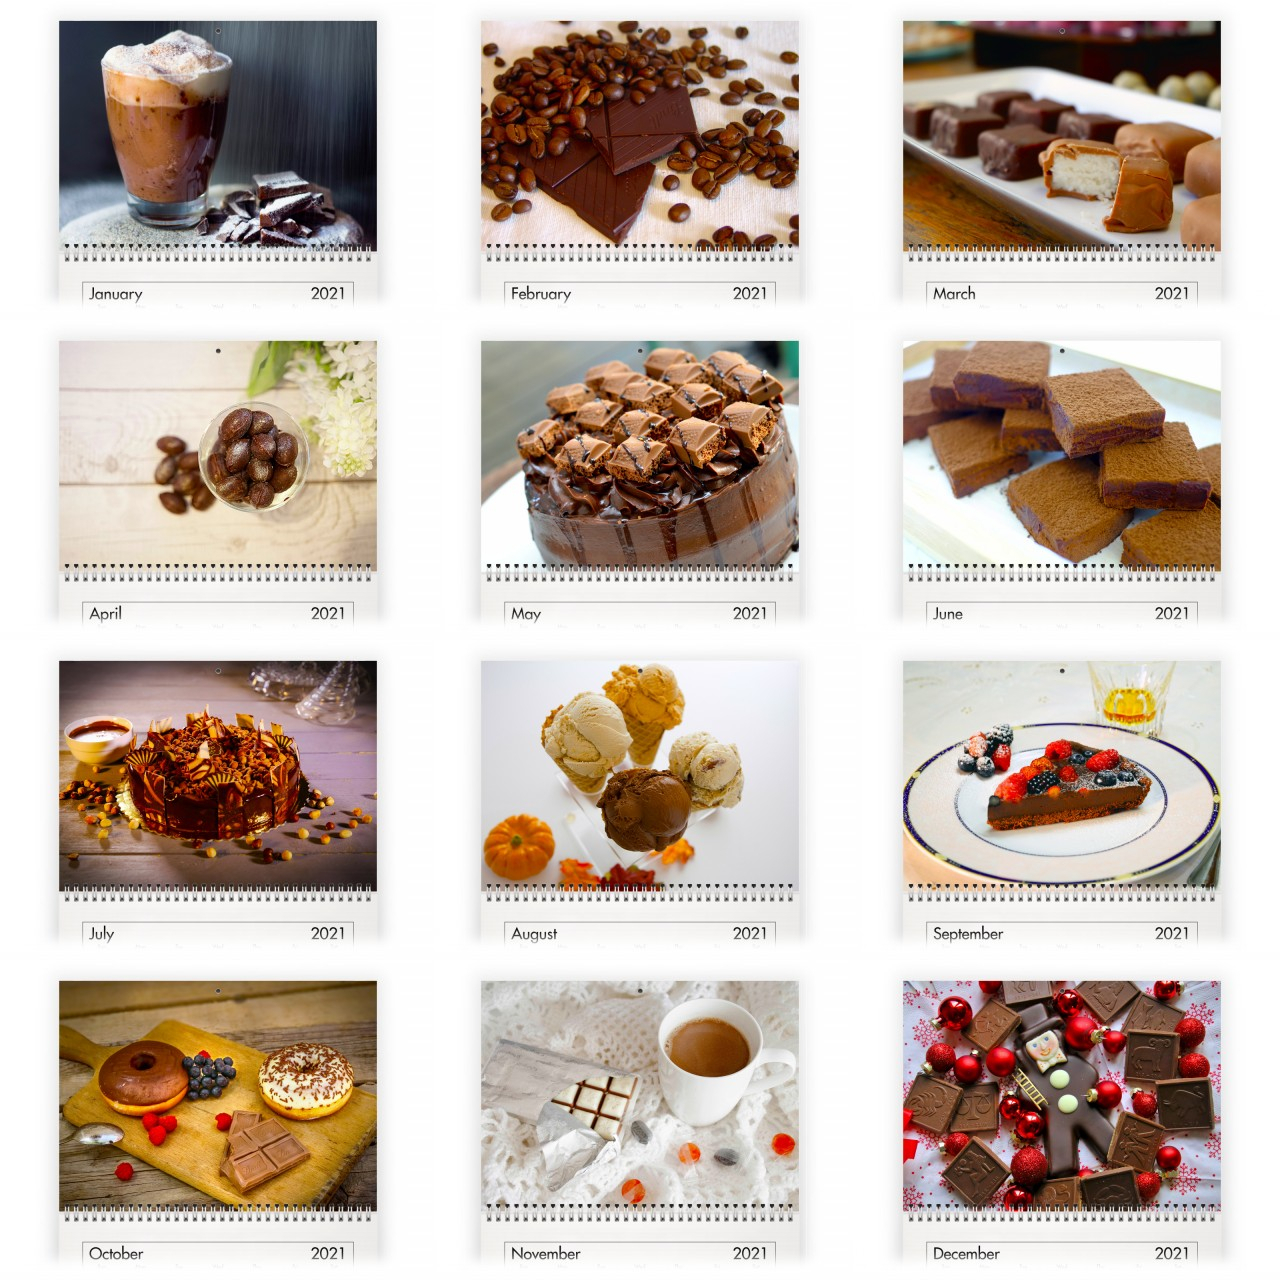 Chocolate 2021 Calendar in National Food Calendar 2021